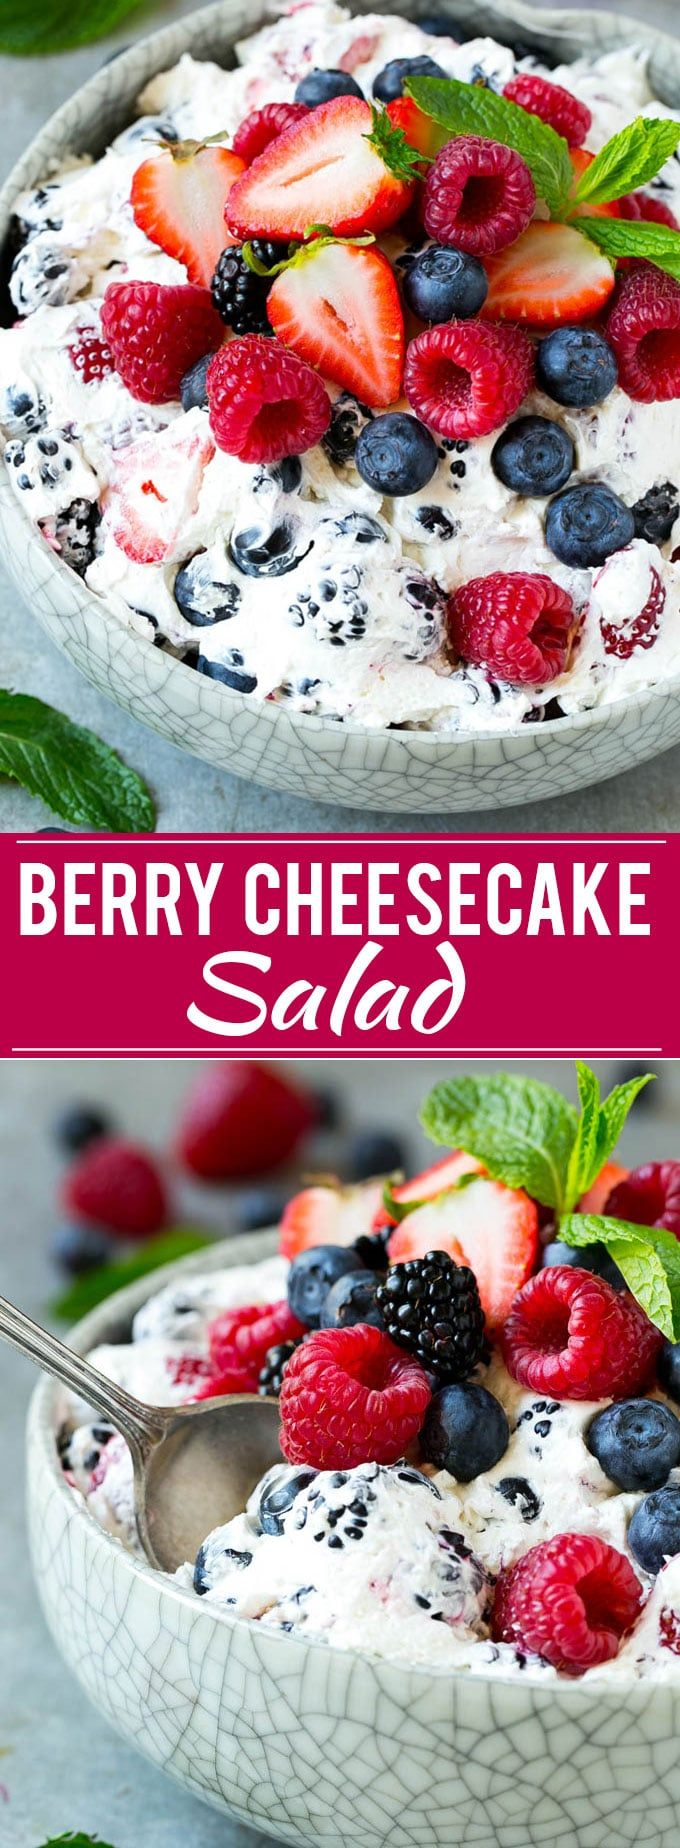 Berry Cheesecake Salad Recipe | Easy to modify for THM